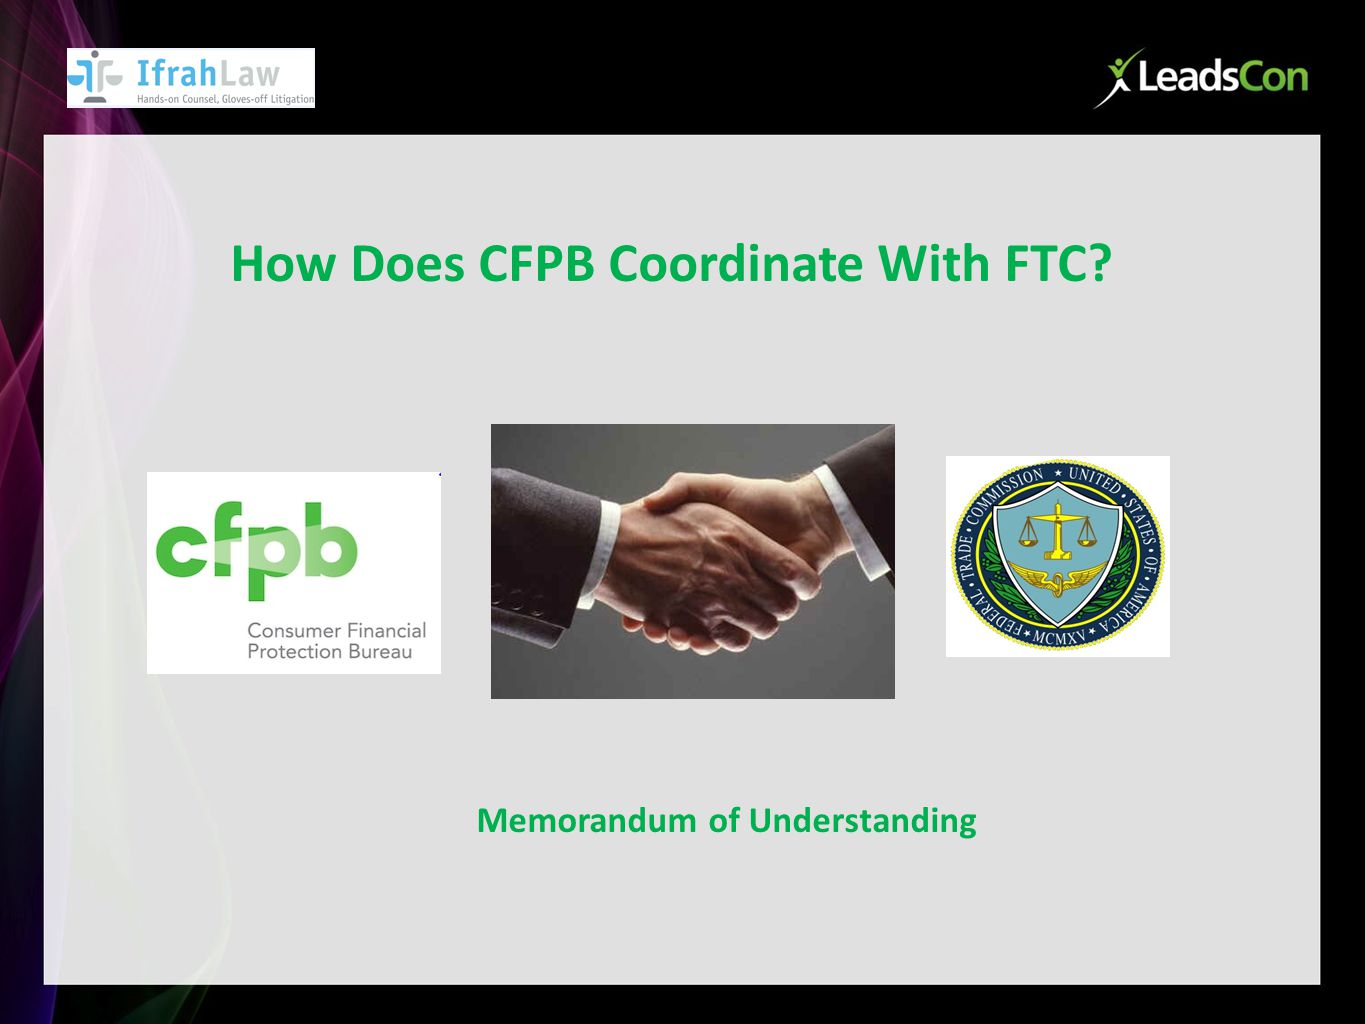 What Actions Has CFPB Taken Thus Far. Know Before You Owe Project QuinStreet, Inc.